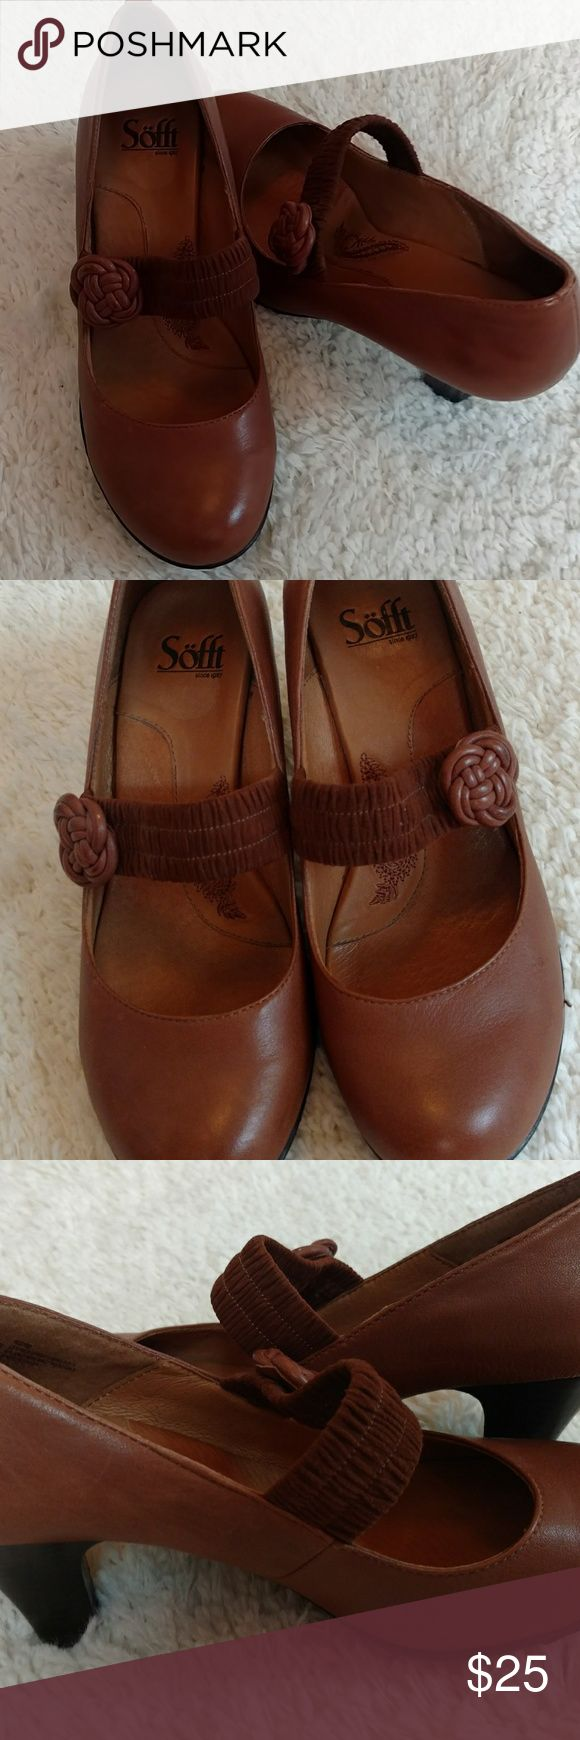 Vintage Style Sofft Shoes Size 8 Wonderfully soft and comfortable Sofft shoes size 8! Worn only once, in excellent used condition. Does have a slightly darkened leather mark on left shoe (see photo). Has a sort of vintage style/flair. Really cute with pencil skirts or trousers! Sofft Shoes